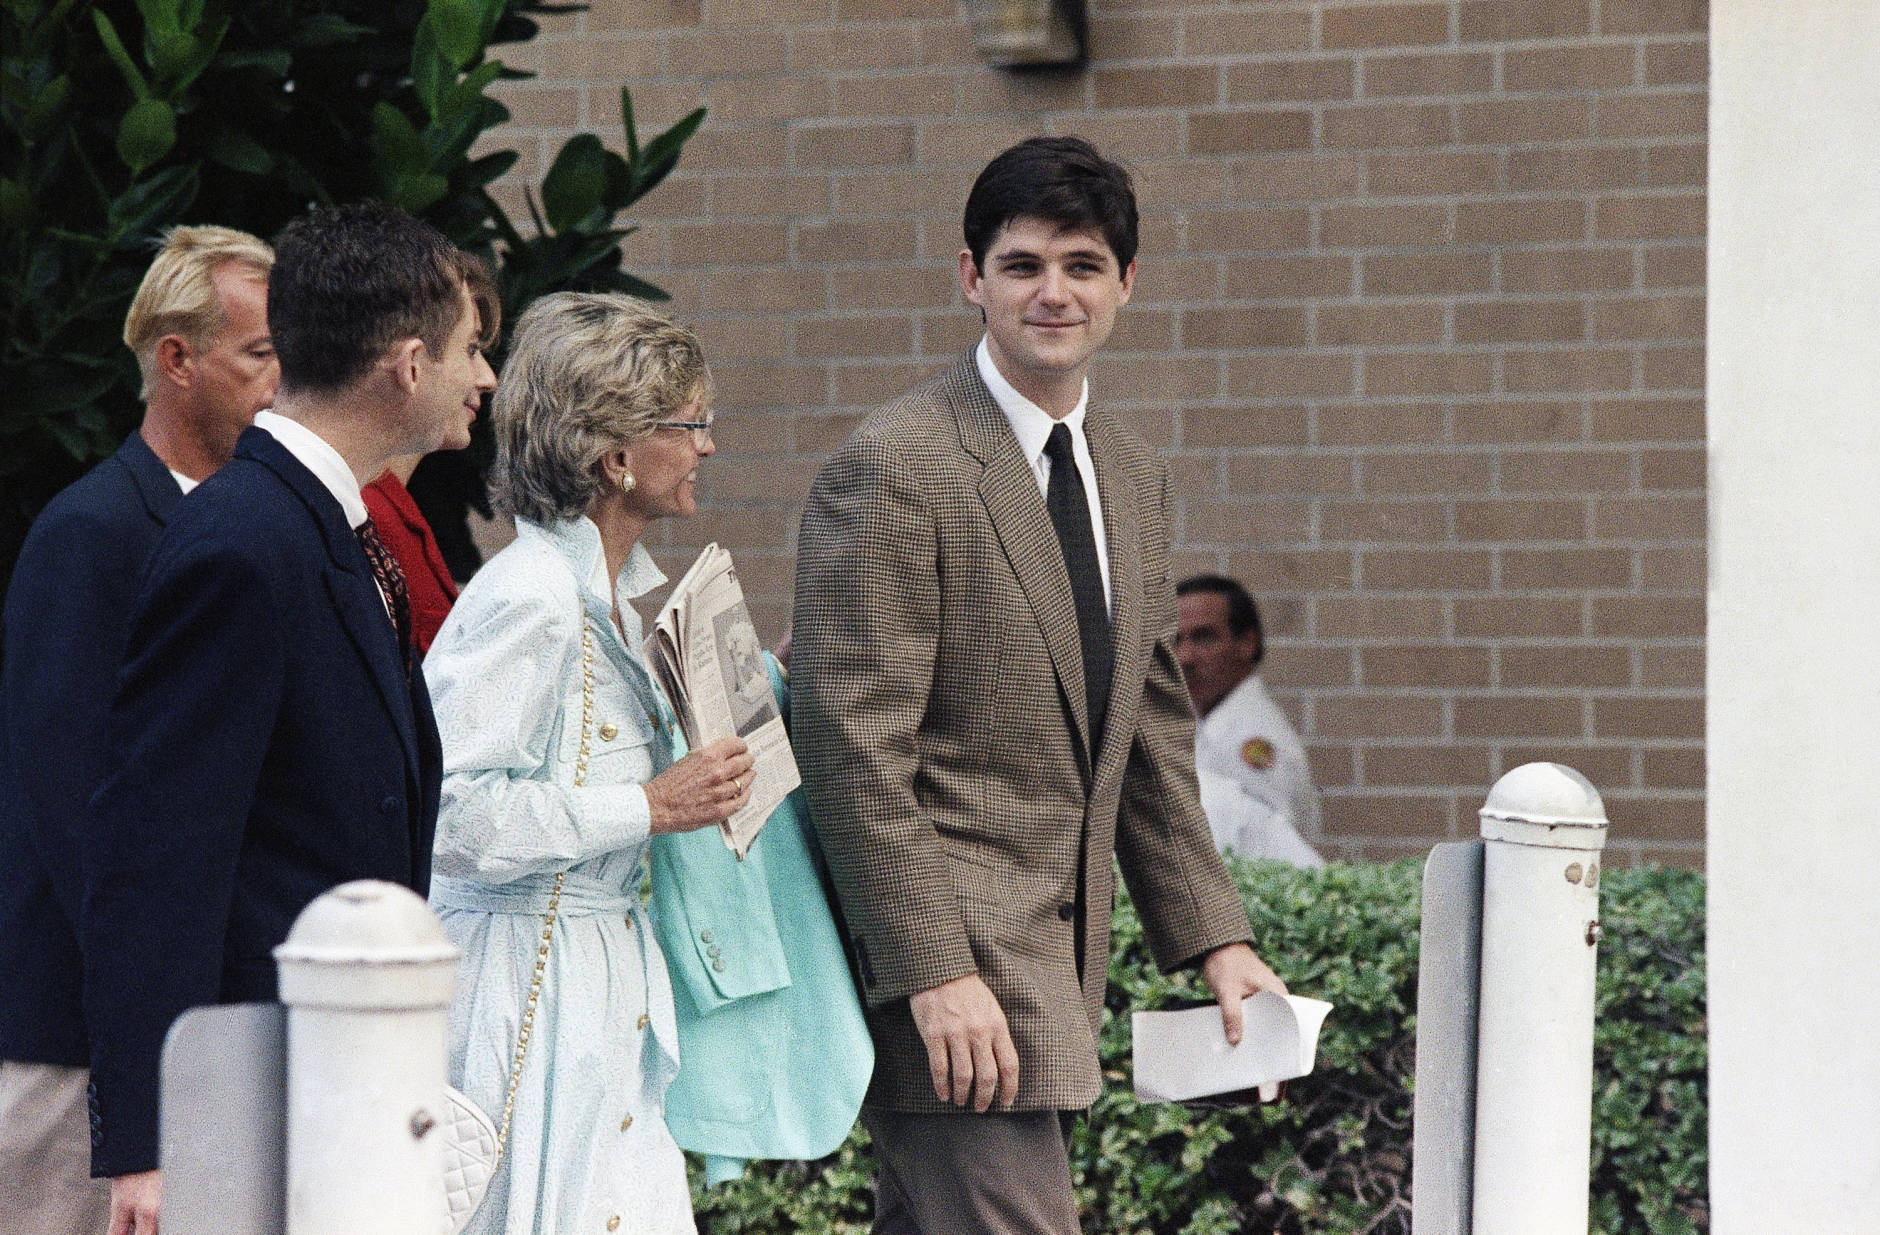 William Kennedy Smith, right, enters the Palm Beach County Courthouse in West Palm Beach, Dec. 2, 1991 with members of his family for the first day of his sexual assault trial. His mother Jean is in the center holding a newspaper. (AP Photo/Chris O'Meara)